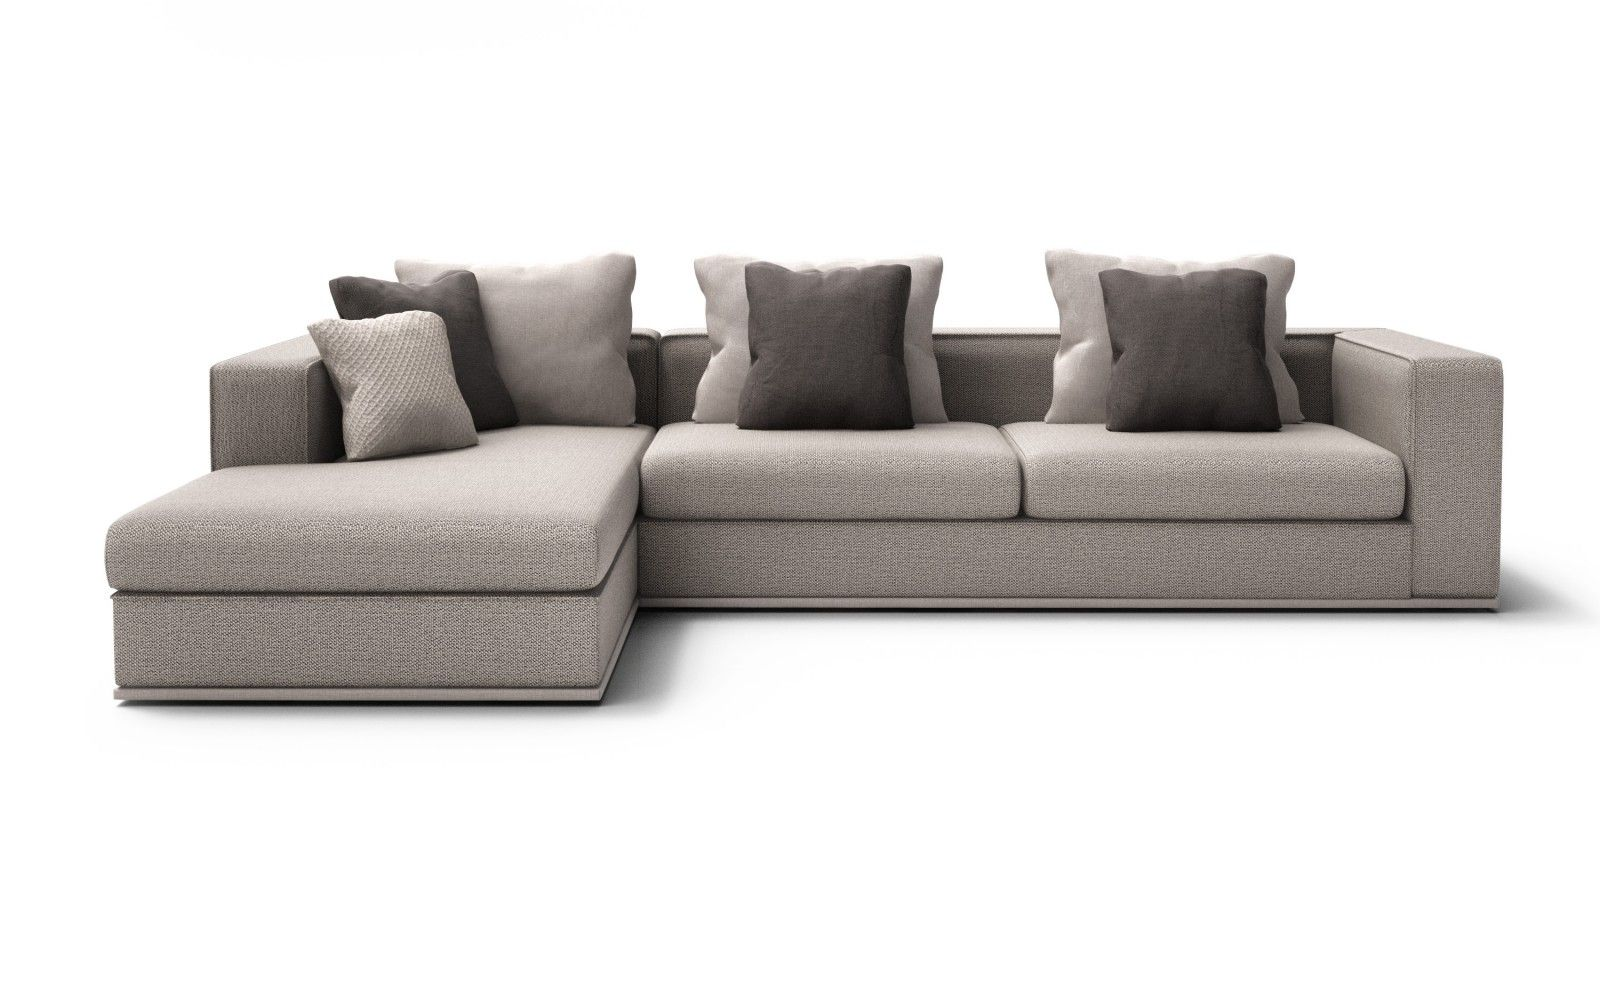 Yliving For Modern Sectional Sofas From The Best Brands And Designers Of Price Match On Sectionals